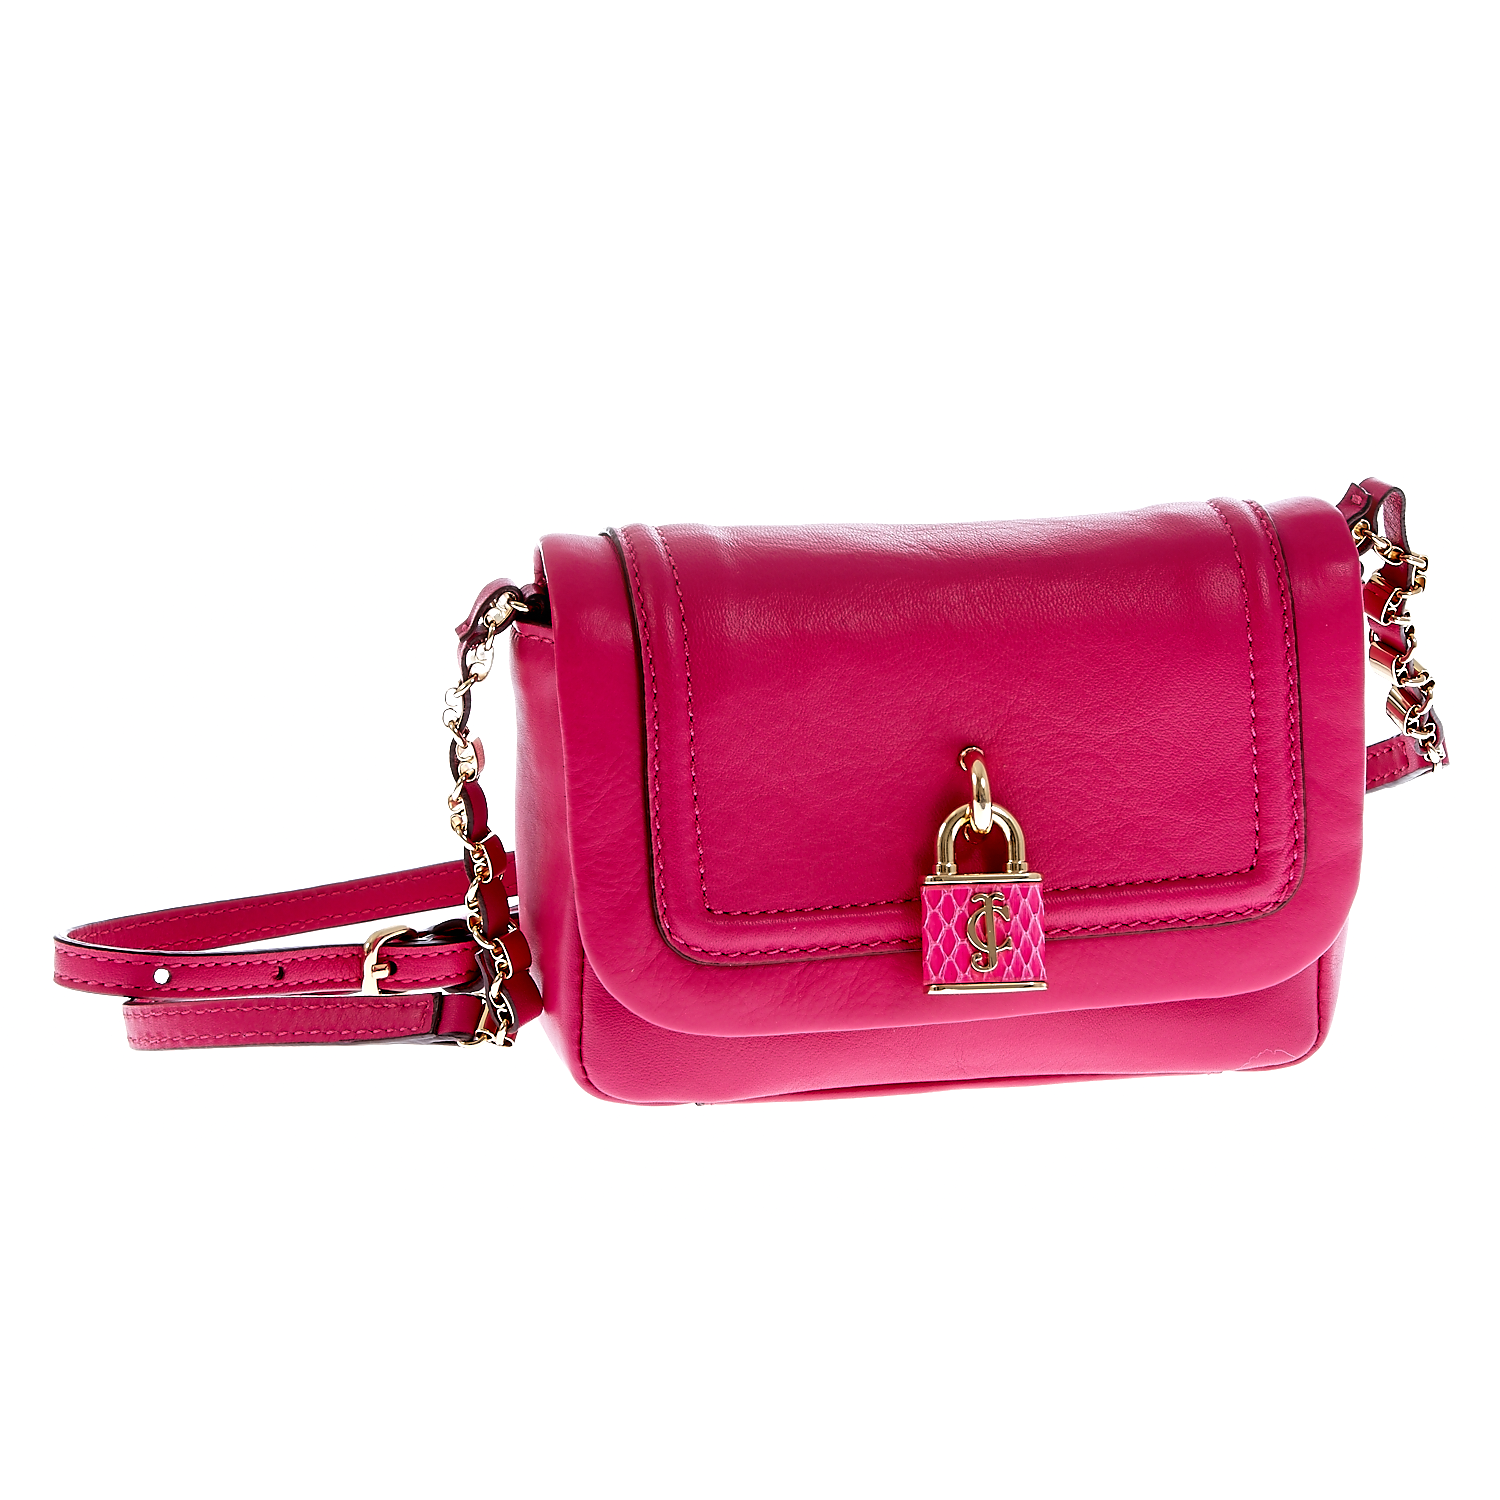 JUICY COUTURE – Γυναικεία τσάντα Juicy Couture φούξια 1409479.0-00F1